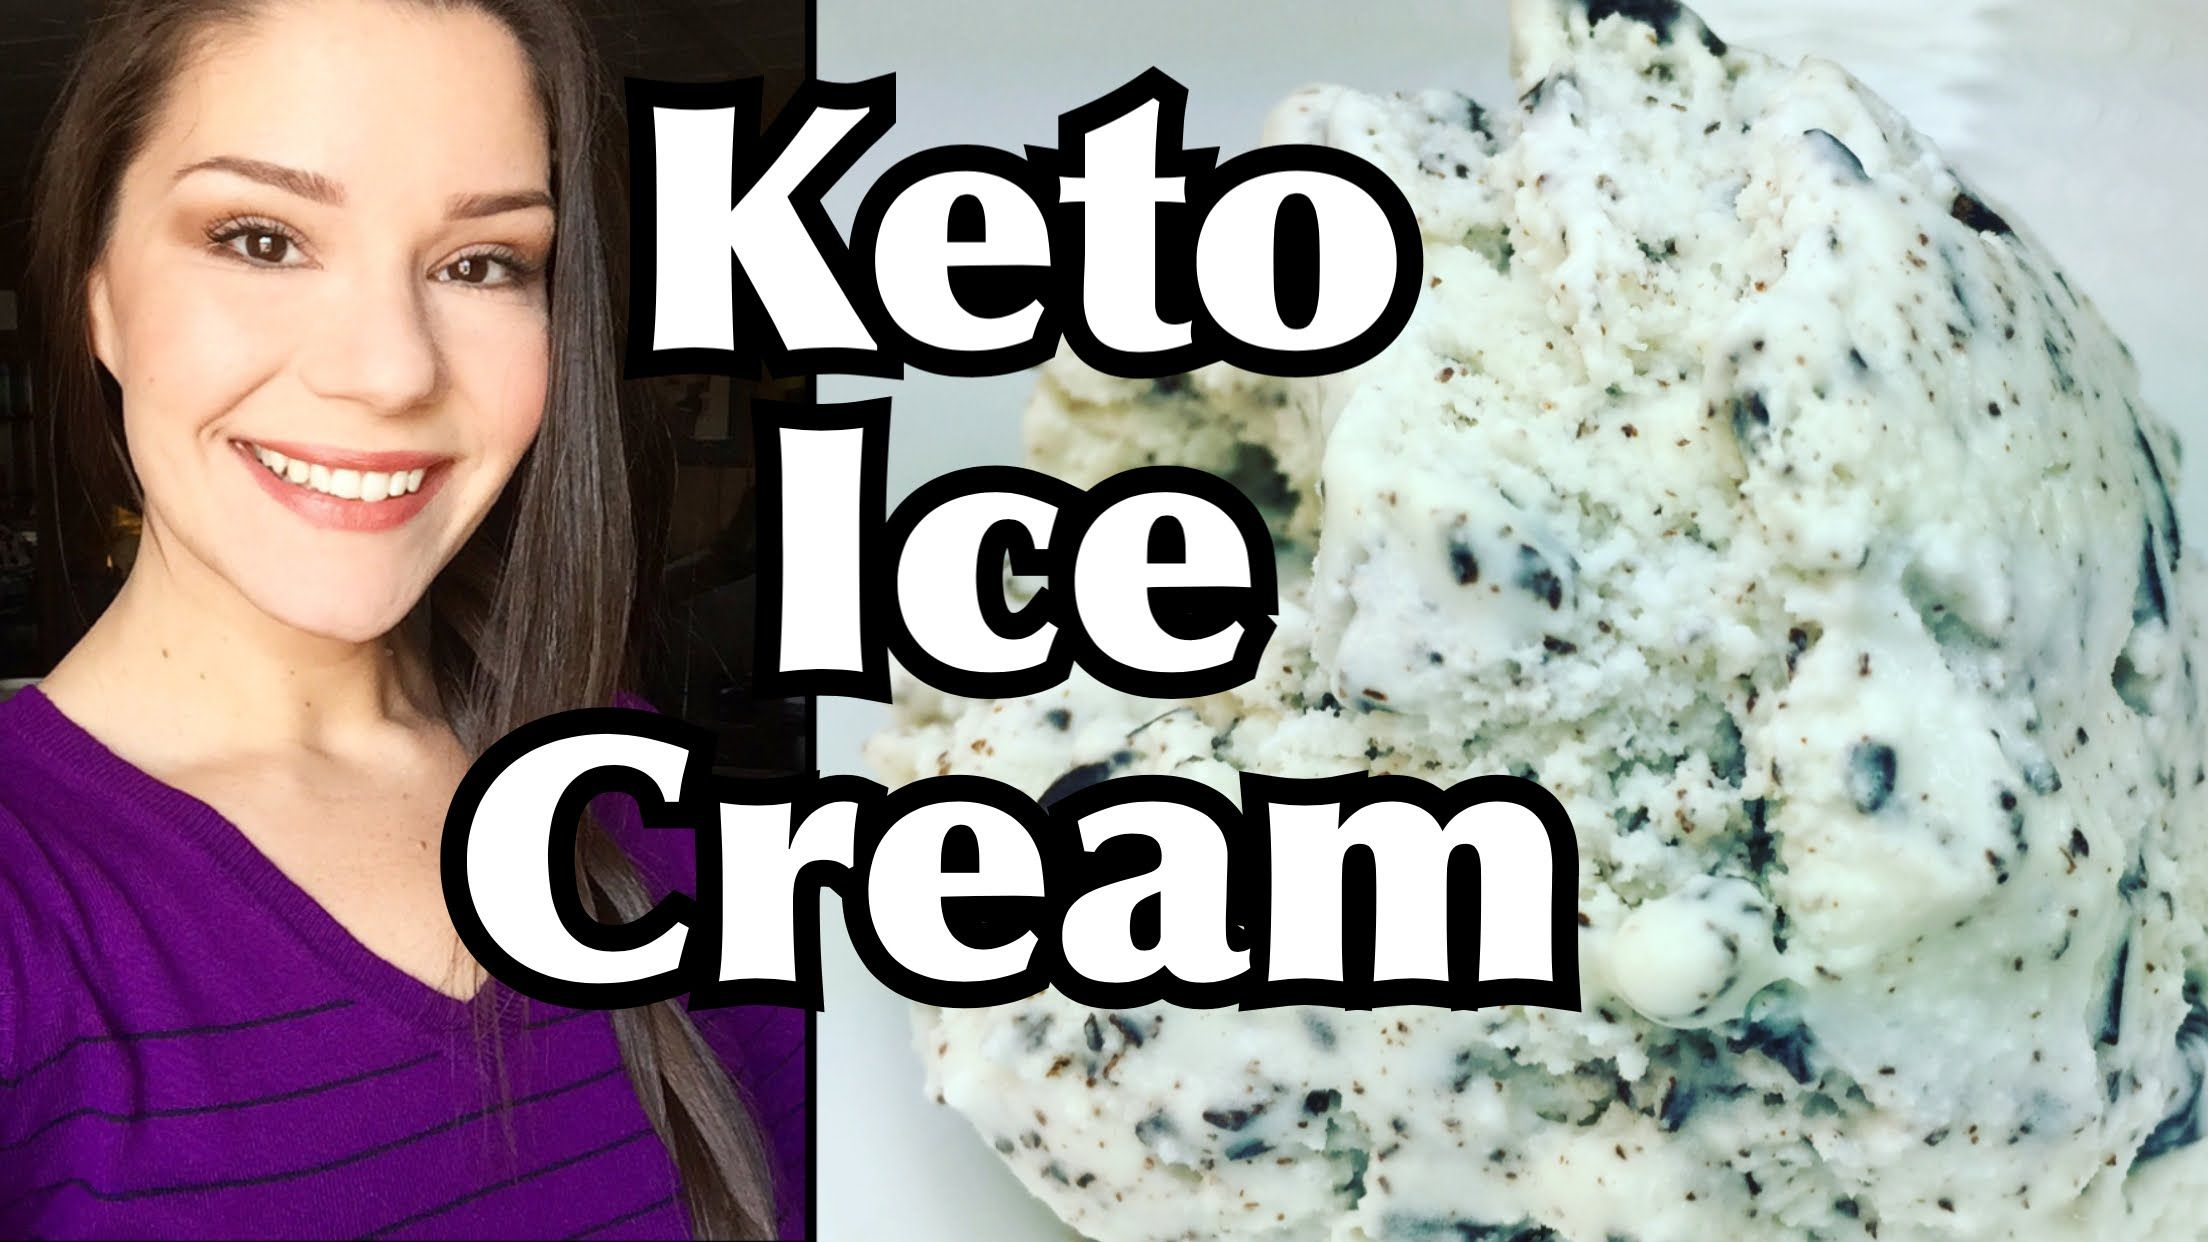 You must try this keto friendlylow carb ice cream i could eat ice cream every single day of my life my latest video shows you all how i make the best keto friendly mint chip ice cream the link ccuart Image collections